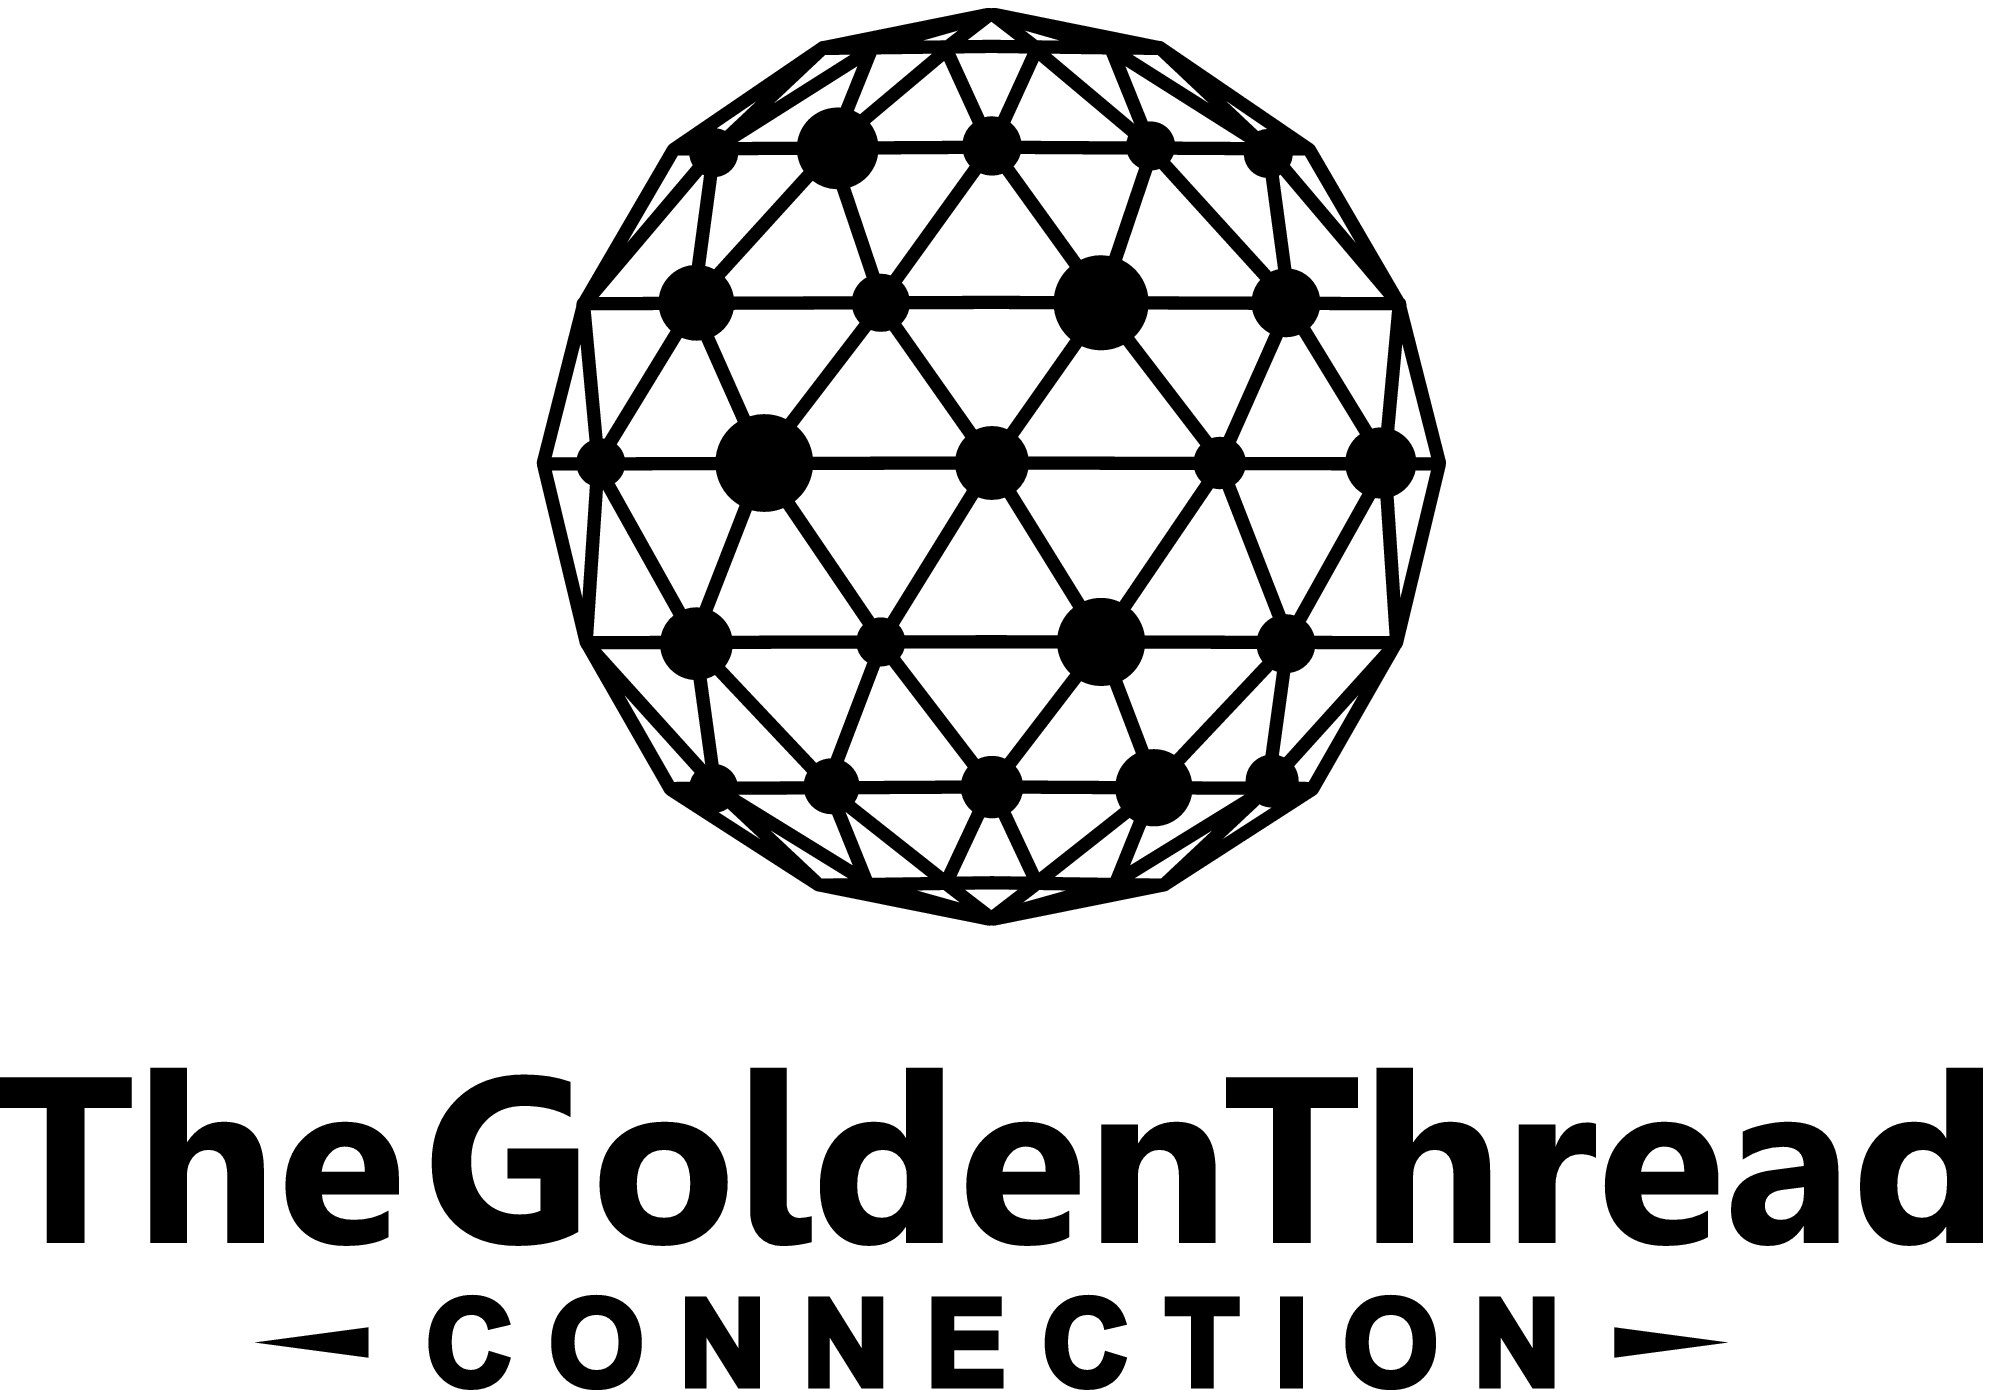 Philosophy, spirituality and art come together for The Golden Thread Connection--and we need a logo!